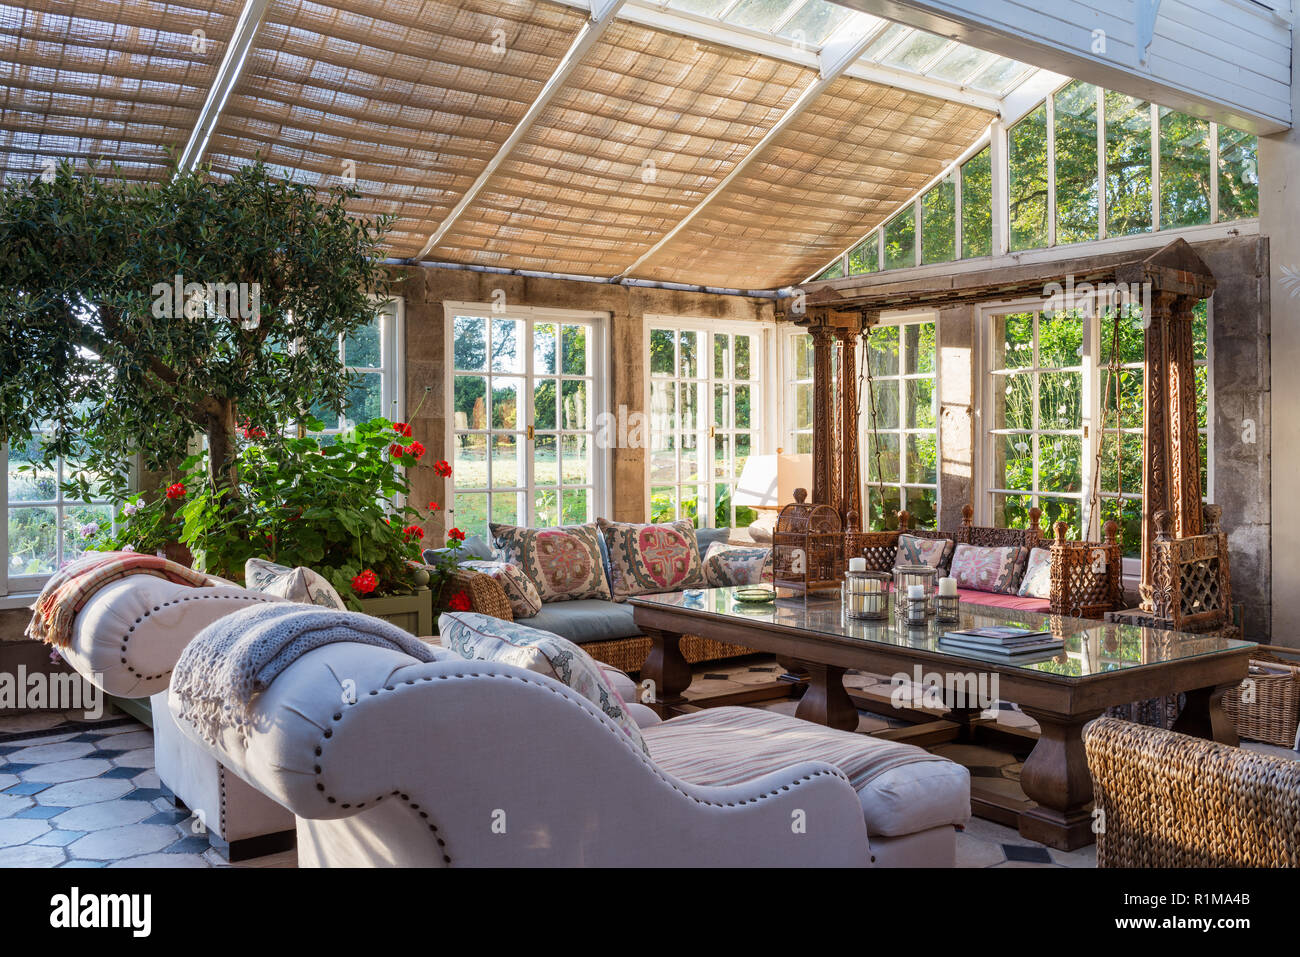 Conservatory dining room with sofas - Stock Image